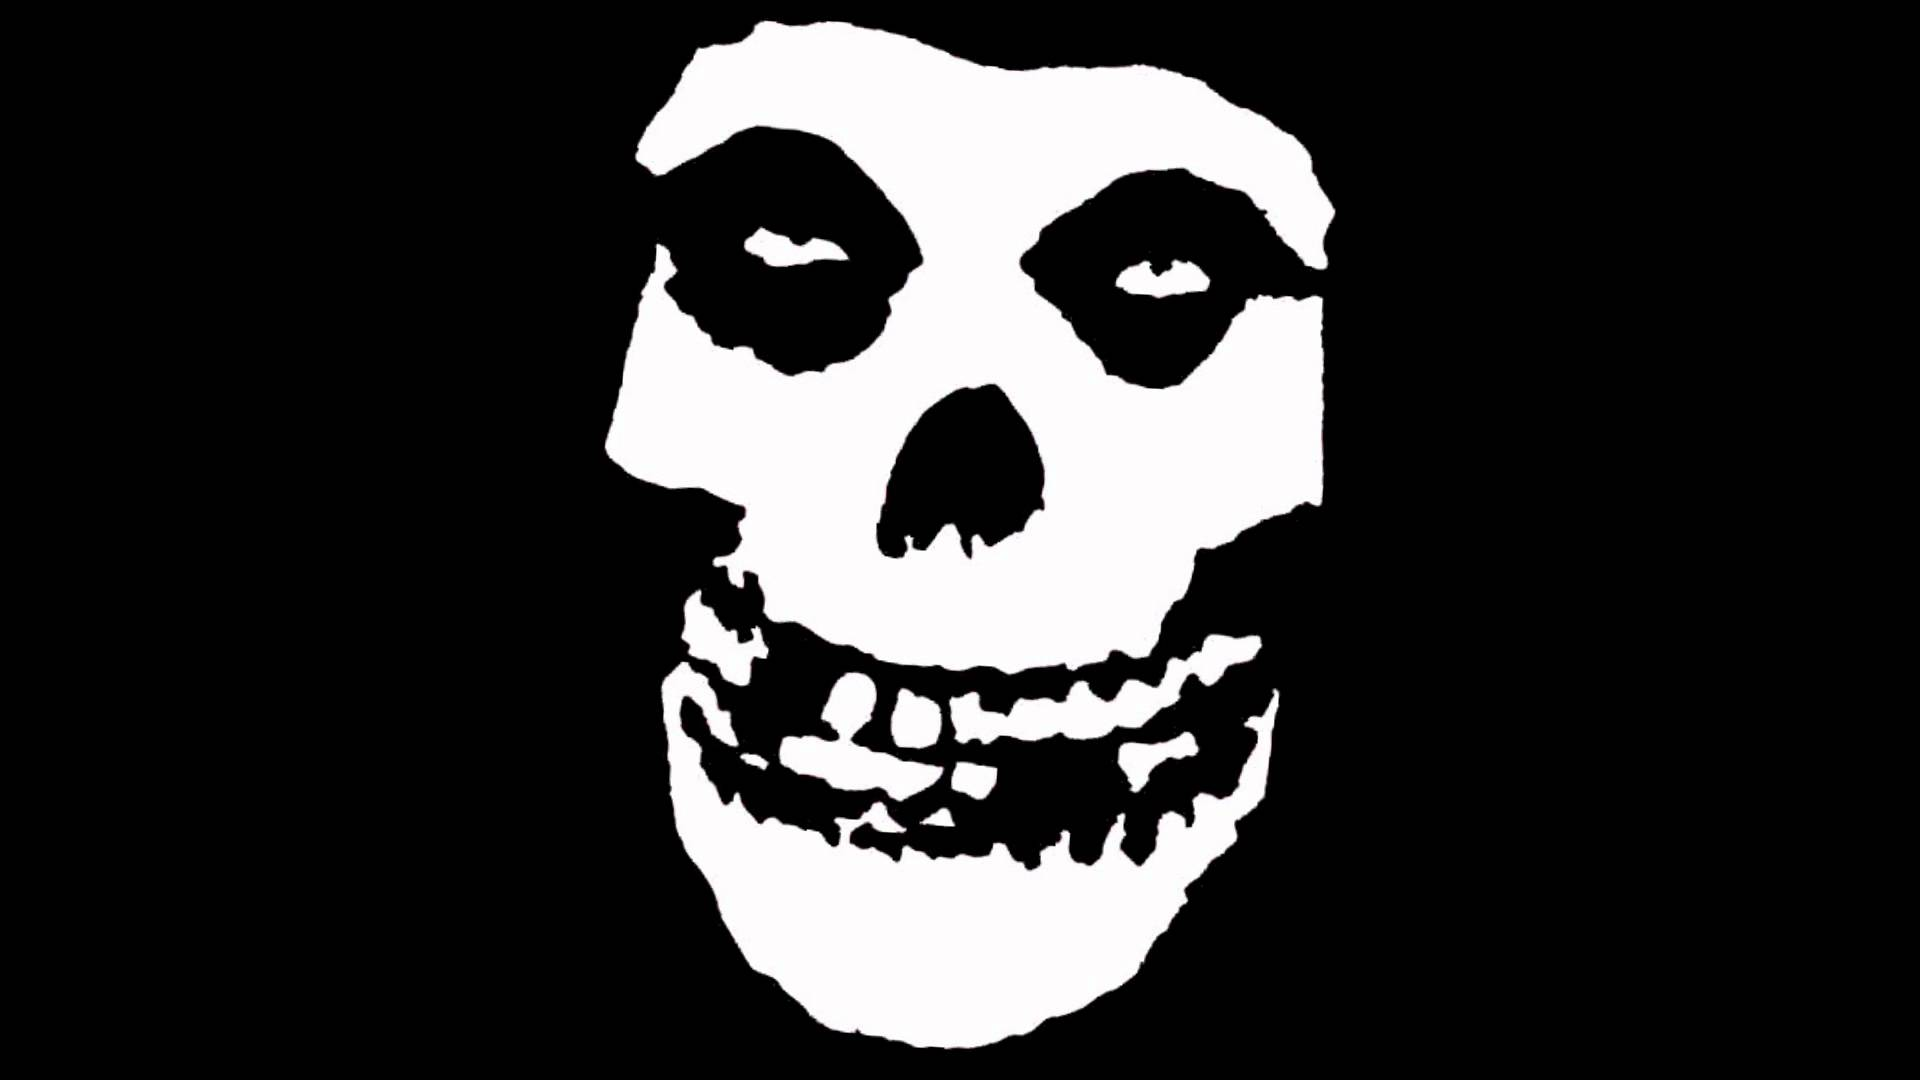 The reunited Misfits tease New York show new jersey tickets pre-sale danzig madison square garden PNC barclays live nation news prudential center tickets pre-sale suicidal tendencies murphy's law